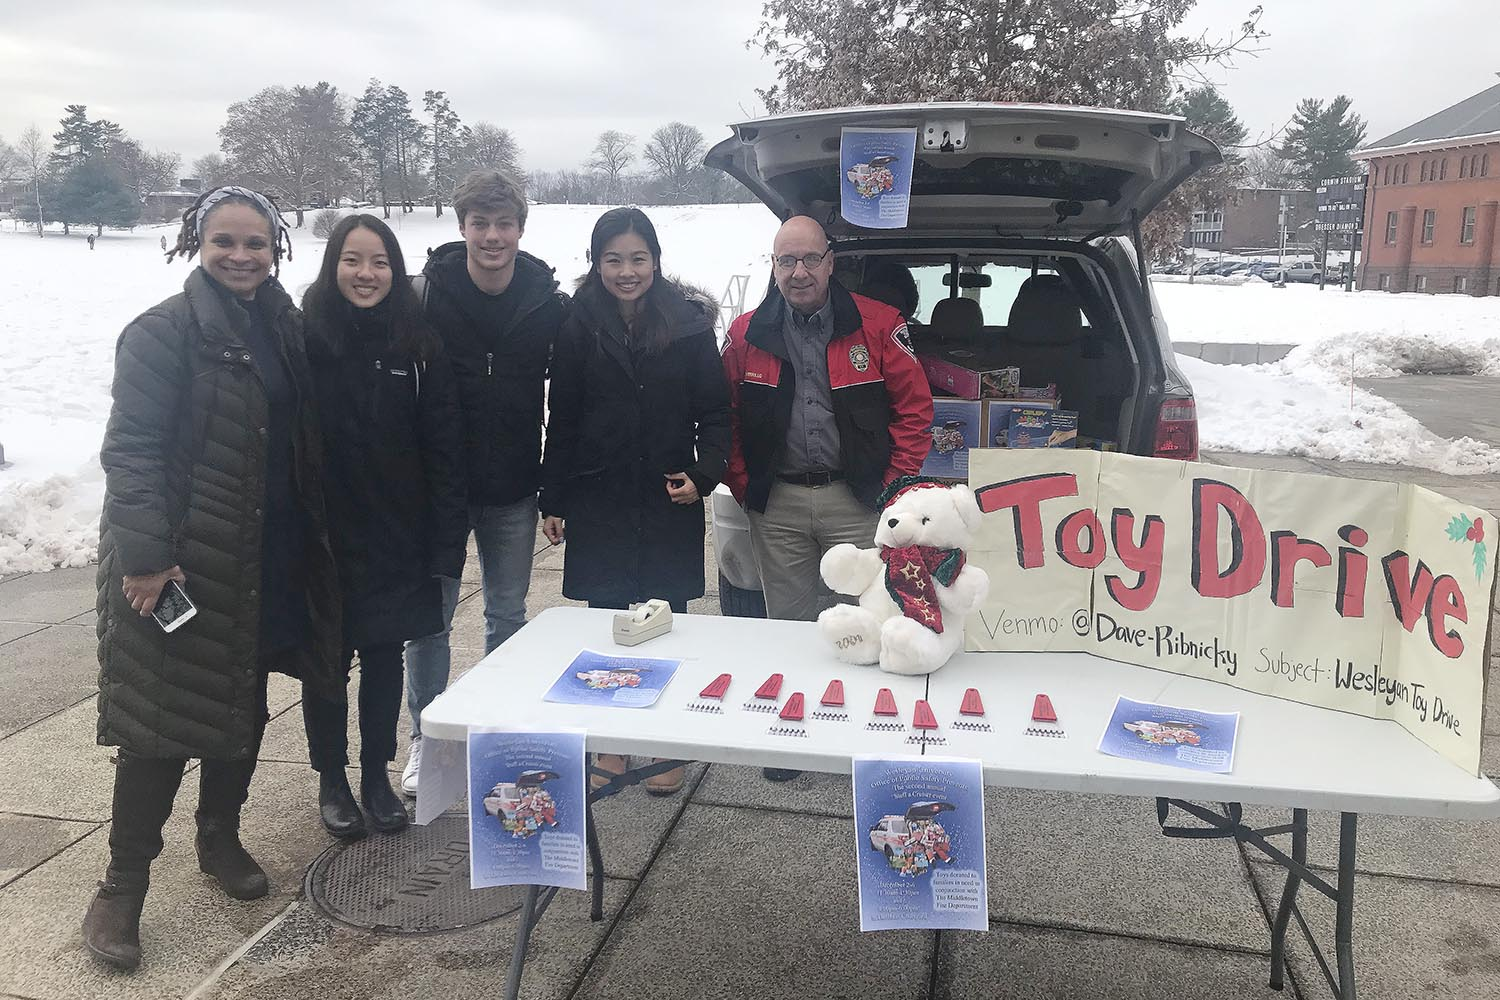 From Dec. 2-6, the Office Public Safety hosted its second annual Stuff a Cruiser toy drive. Several student-athletes, members of the Student Athlete Advisory Committee, and members of Delta Kappa Epsilon fraternity volunteered to help collect donations.